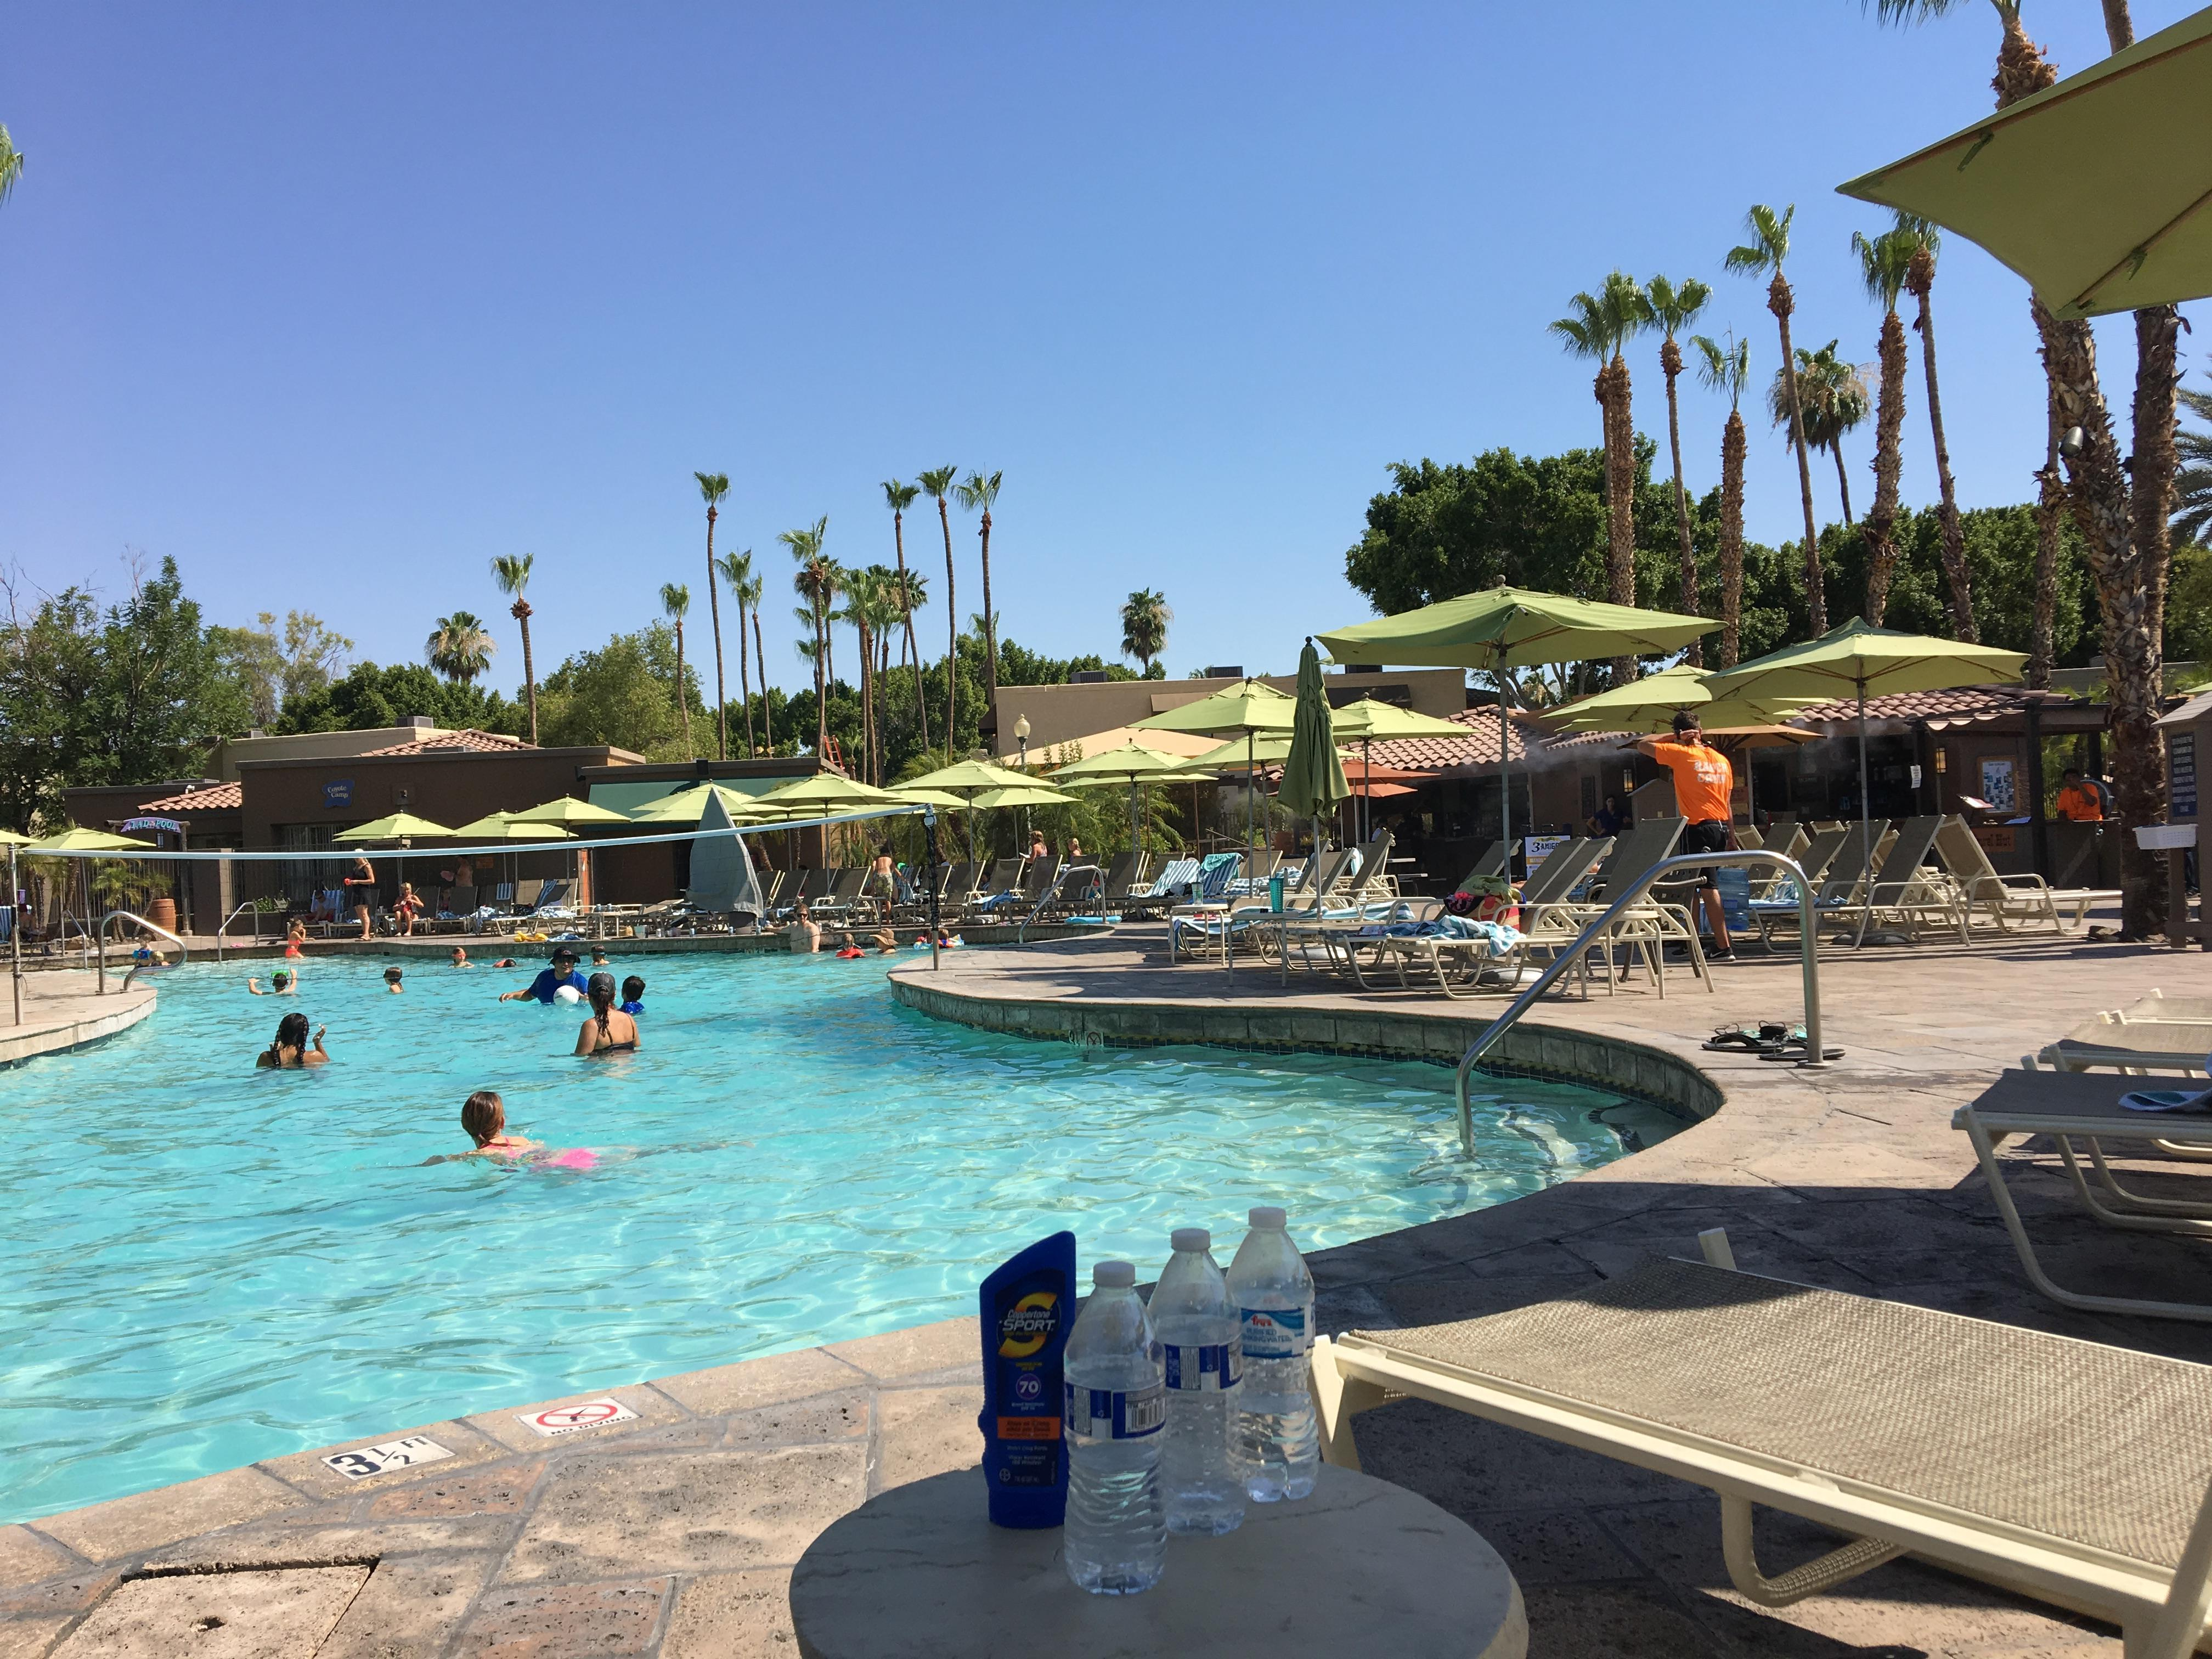 River Ranch Main Pool. Summer fun and perfect way to cool off in the extreme summer heat in Phoenix!